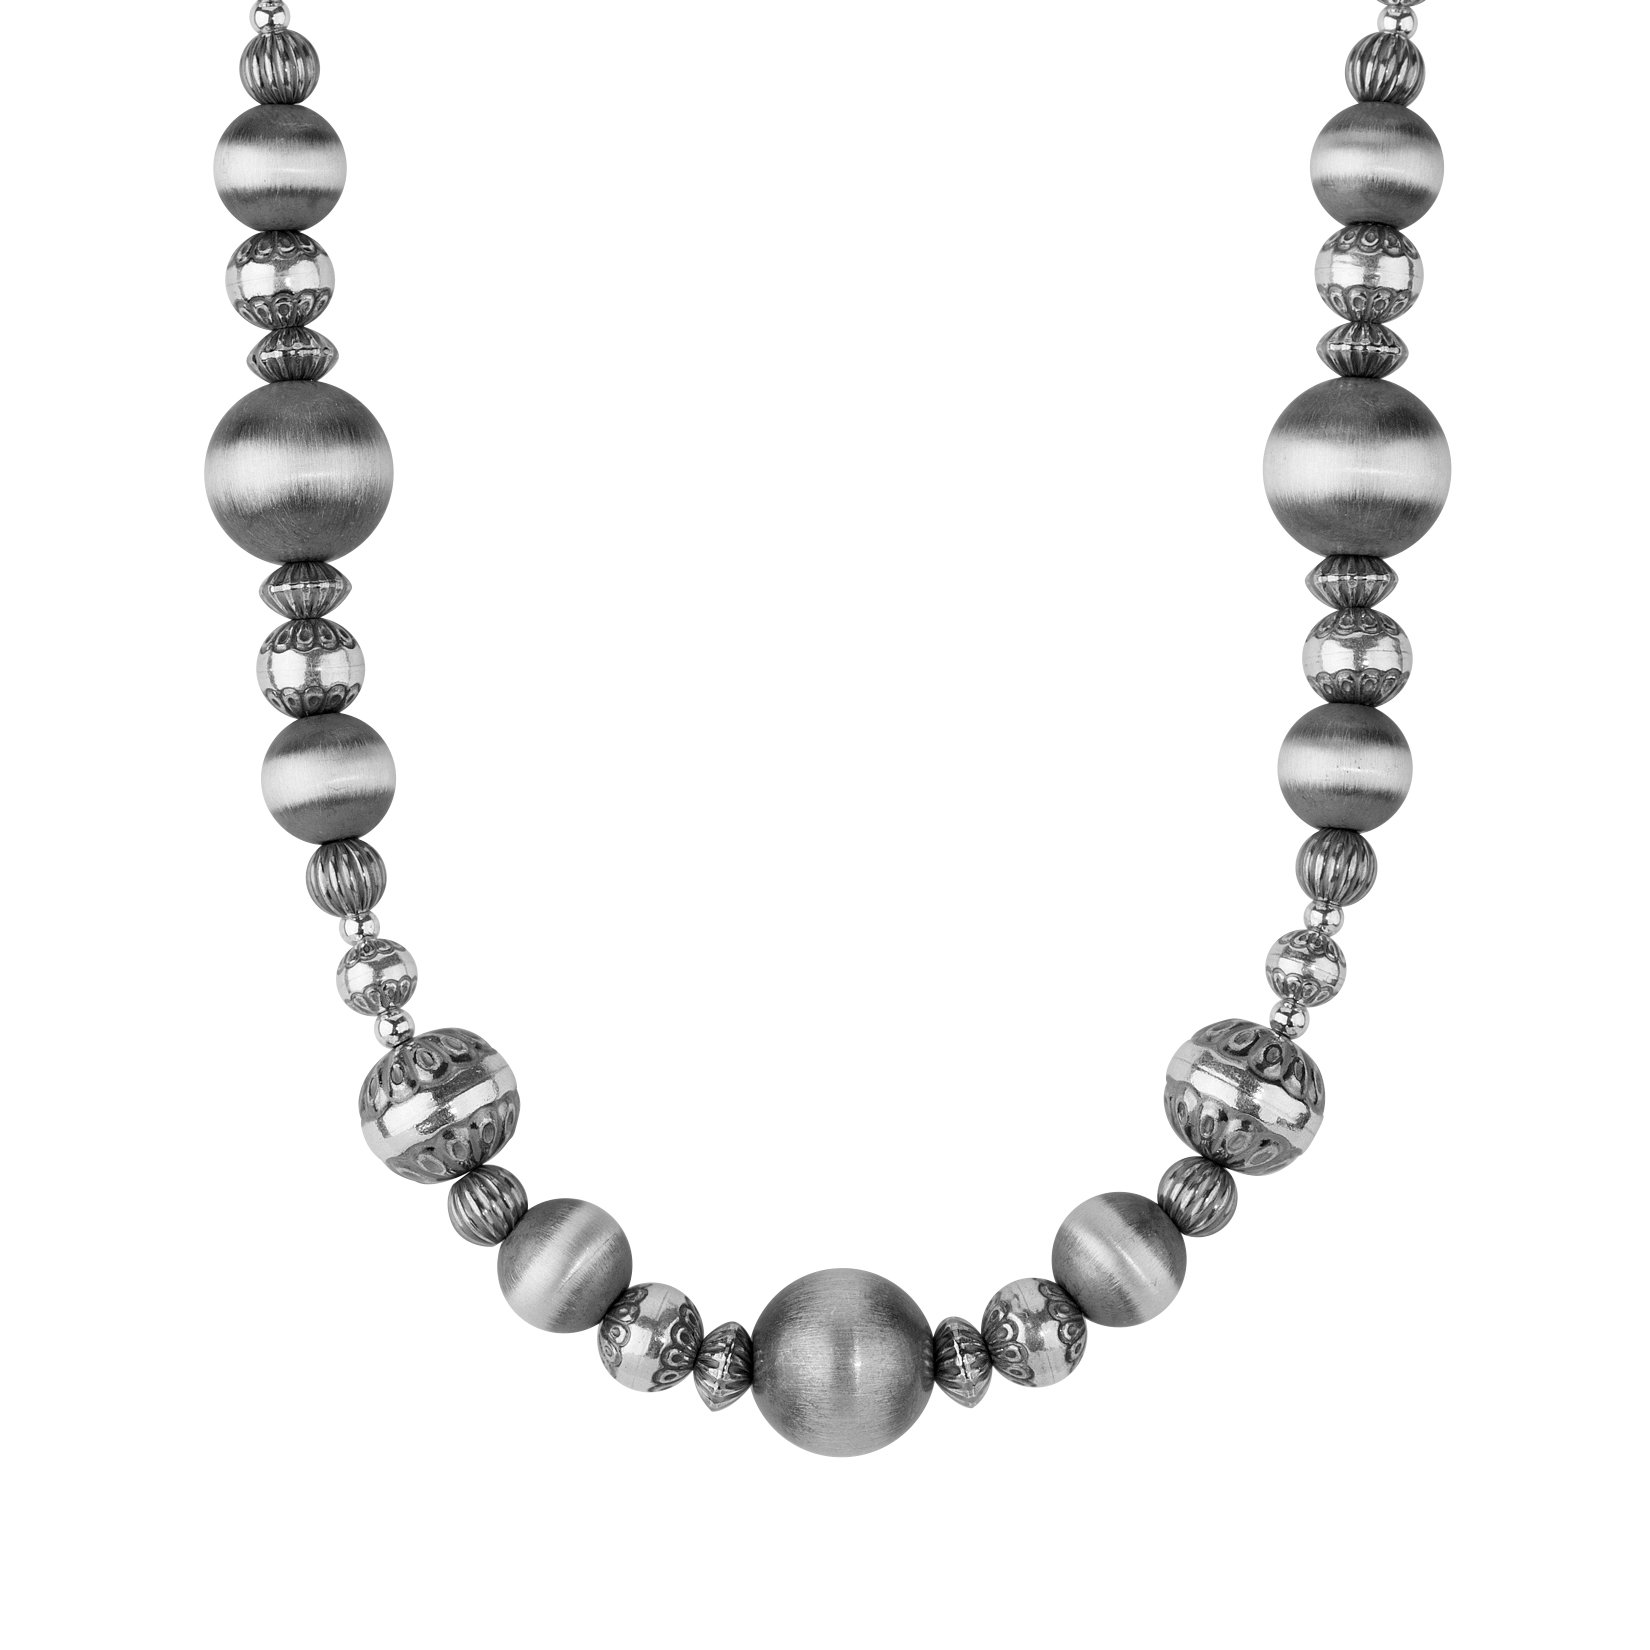 Sterling Silver Stamped Bead Necklace, 17 Inch